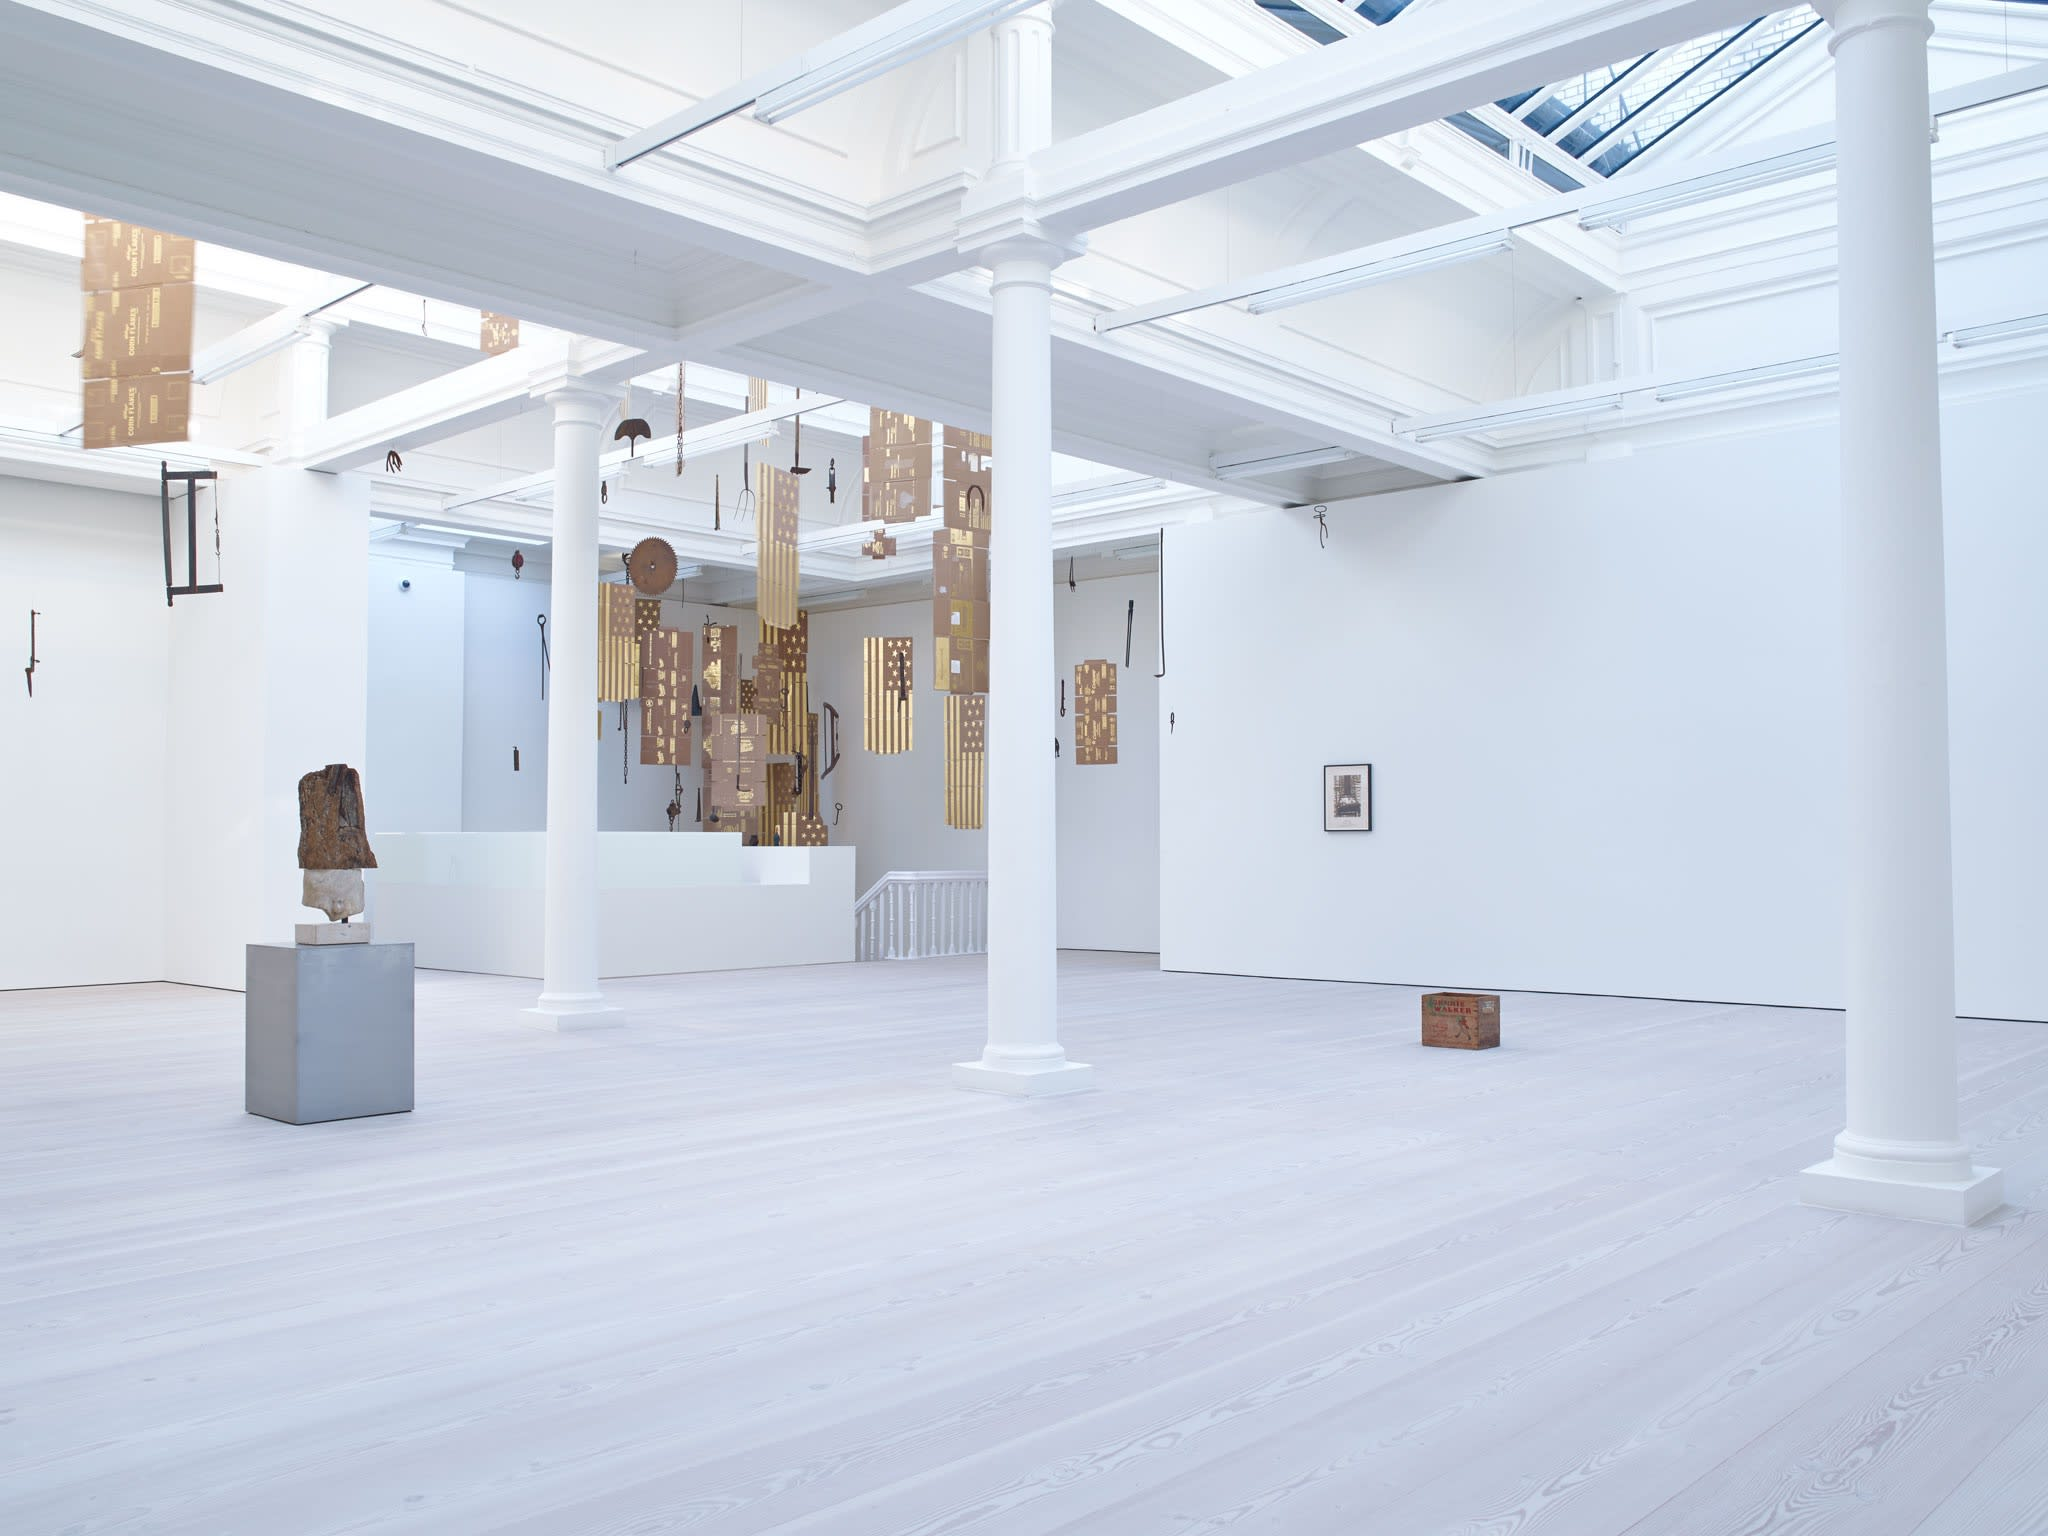 In a large white space with a long glass skylight, sculptures hang from the ceiling - most seem to be American flags, with 13 stars, made out of gold painted cardboard.